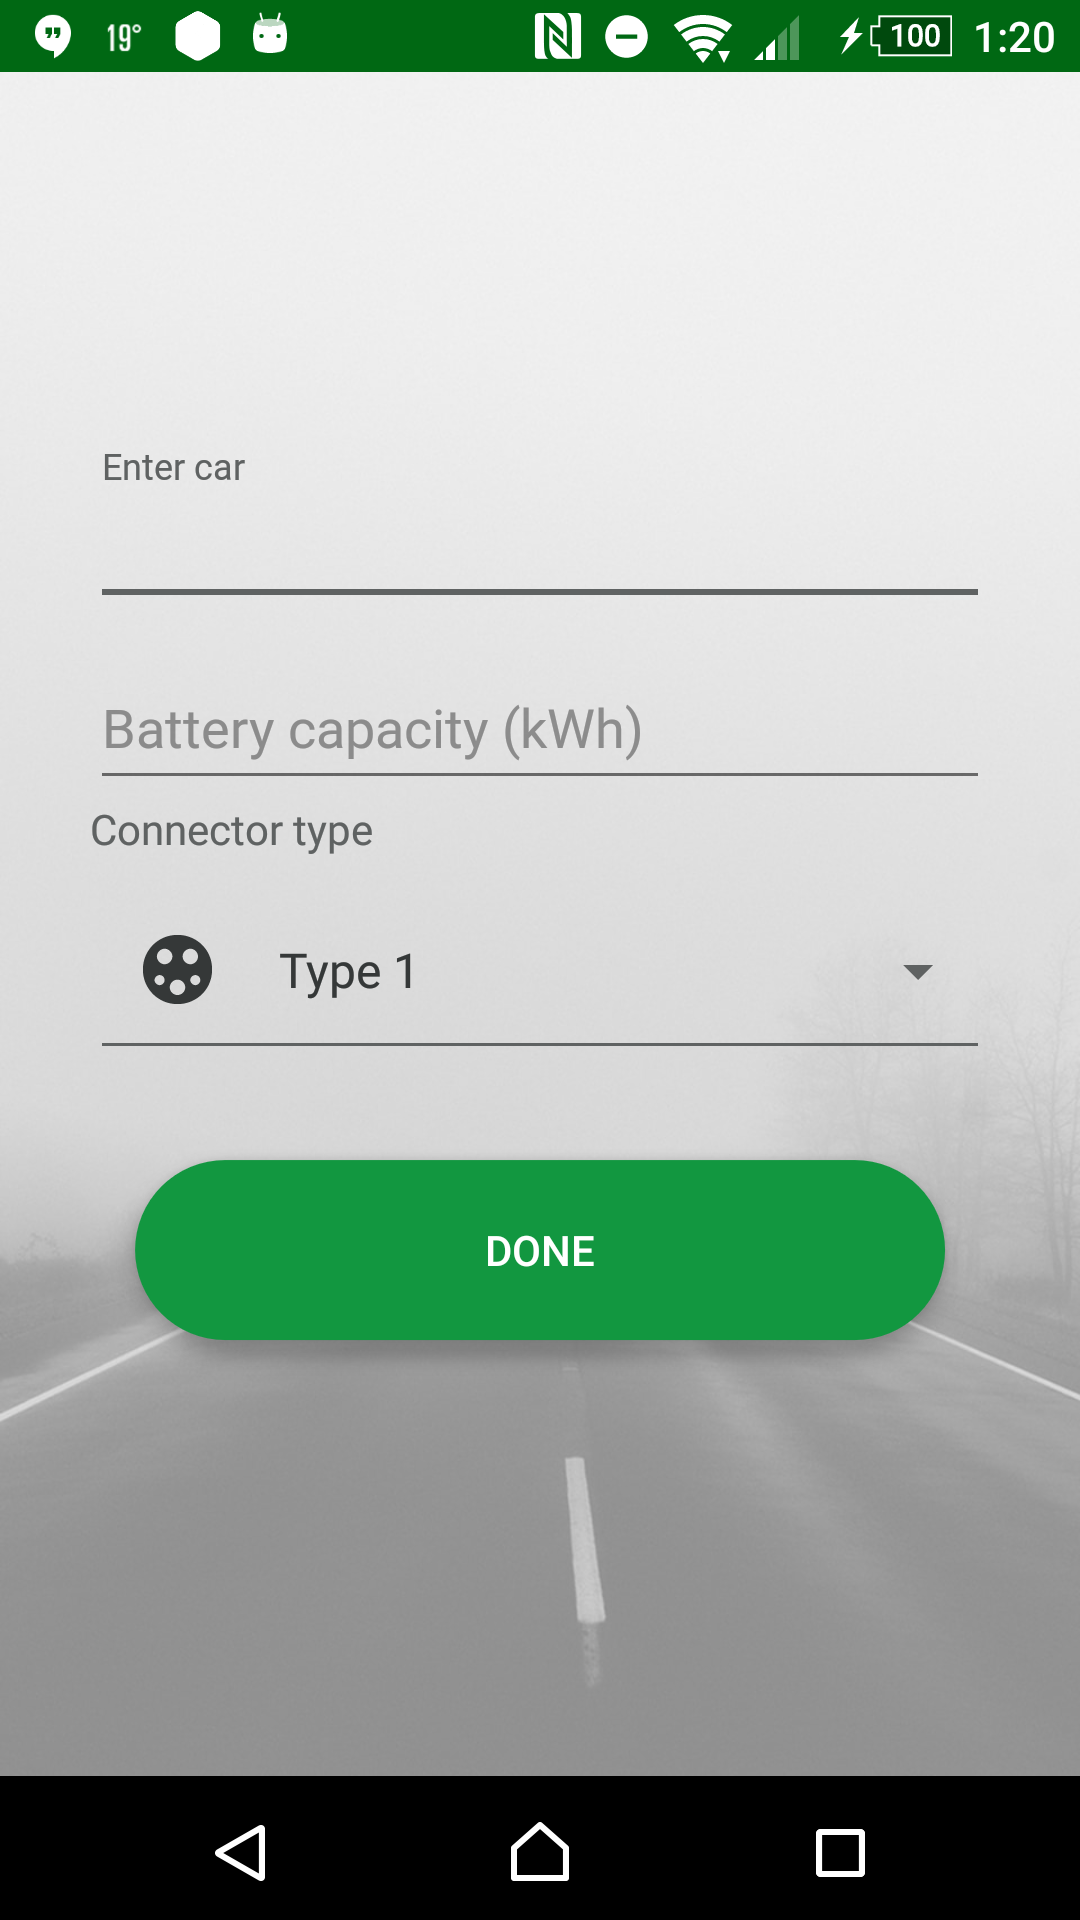 Select your car, battery capacity and type of connector